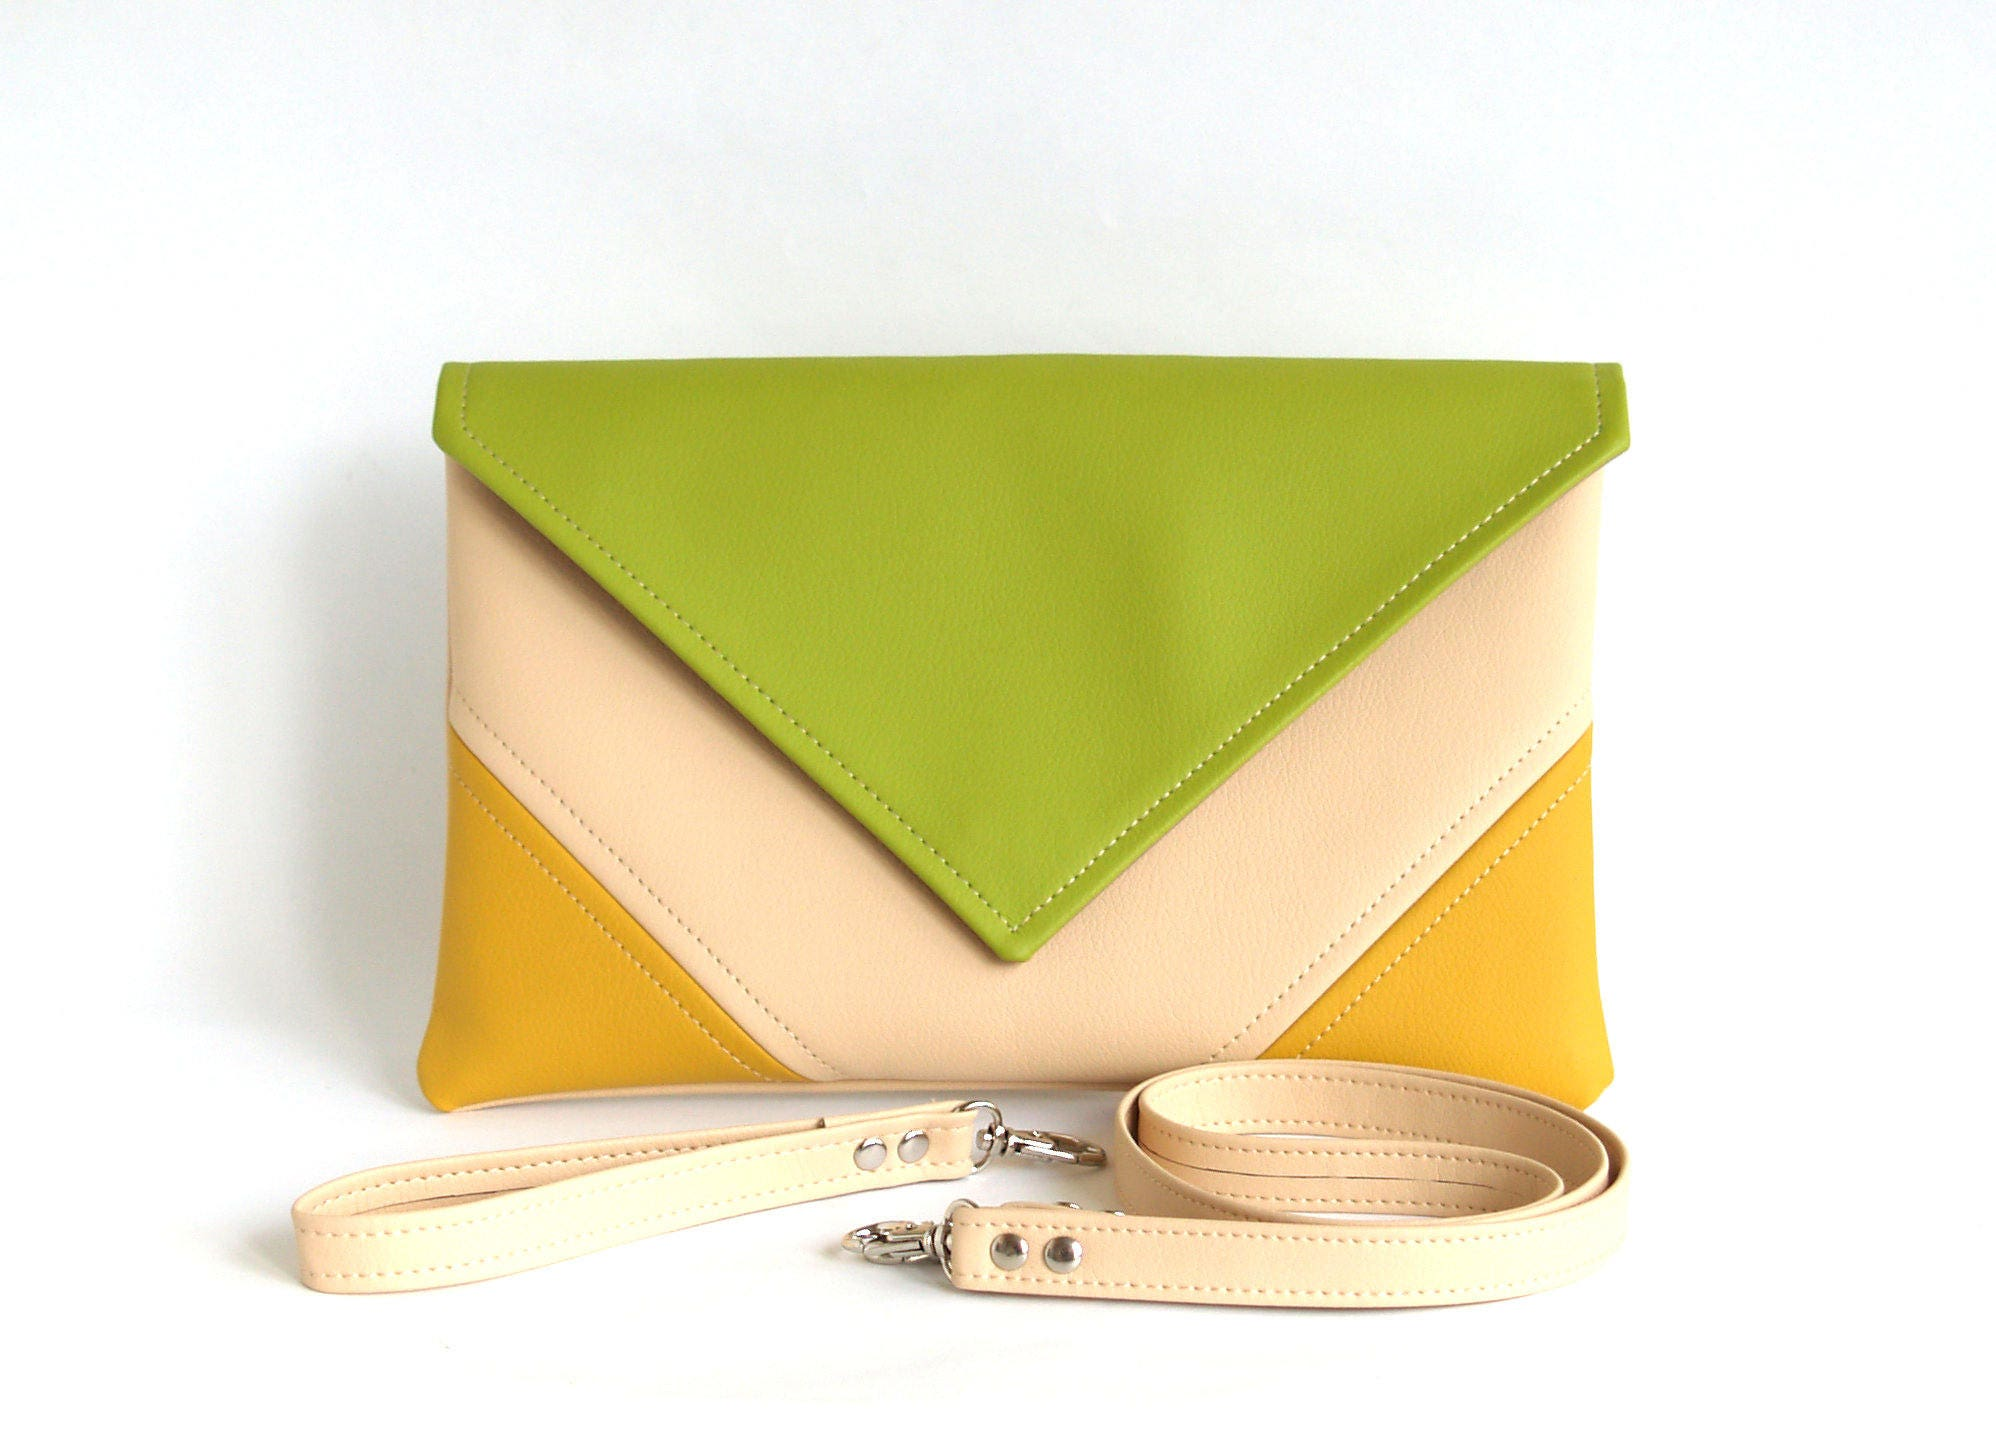 Clutches Evening Bags Elegant Fashion Clutch Cream Bag Envelope Palette Green Lime Yellow Purse Vegan Eco Faux Leather